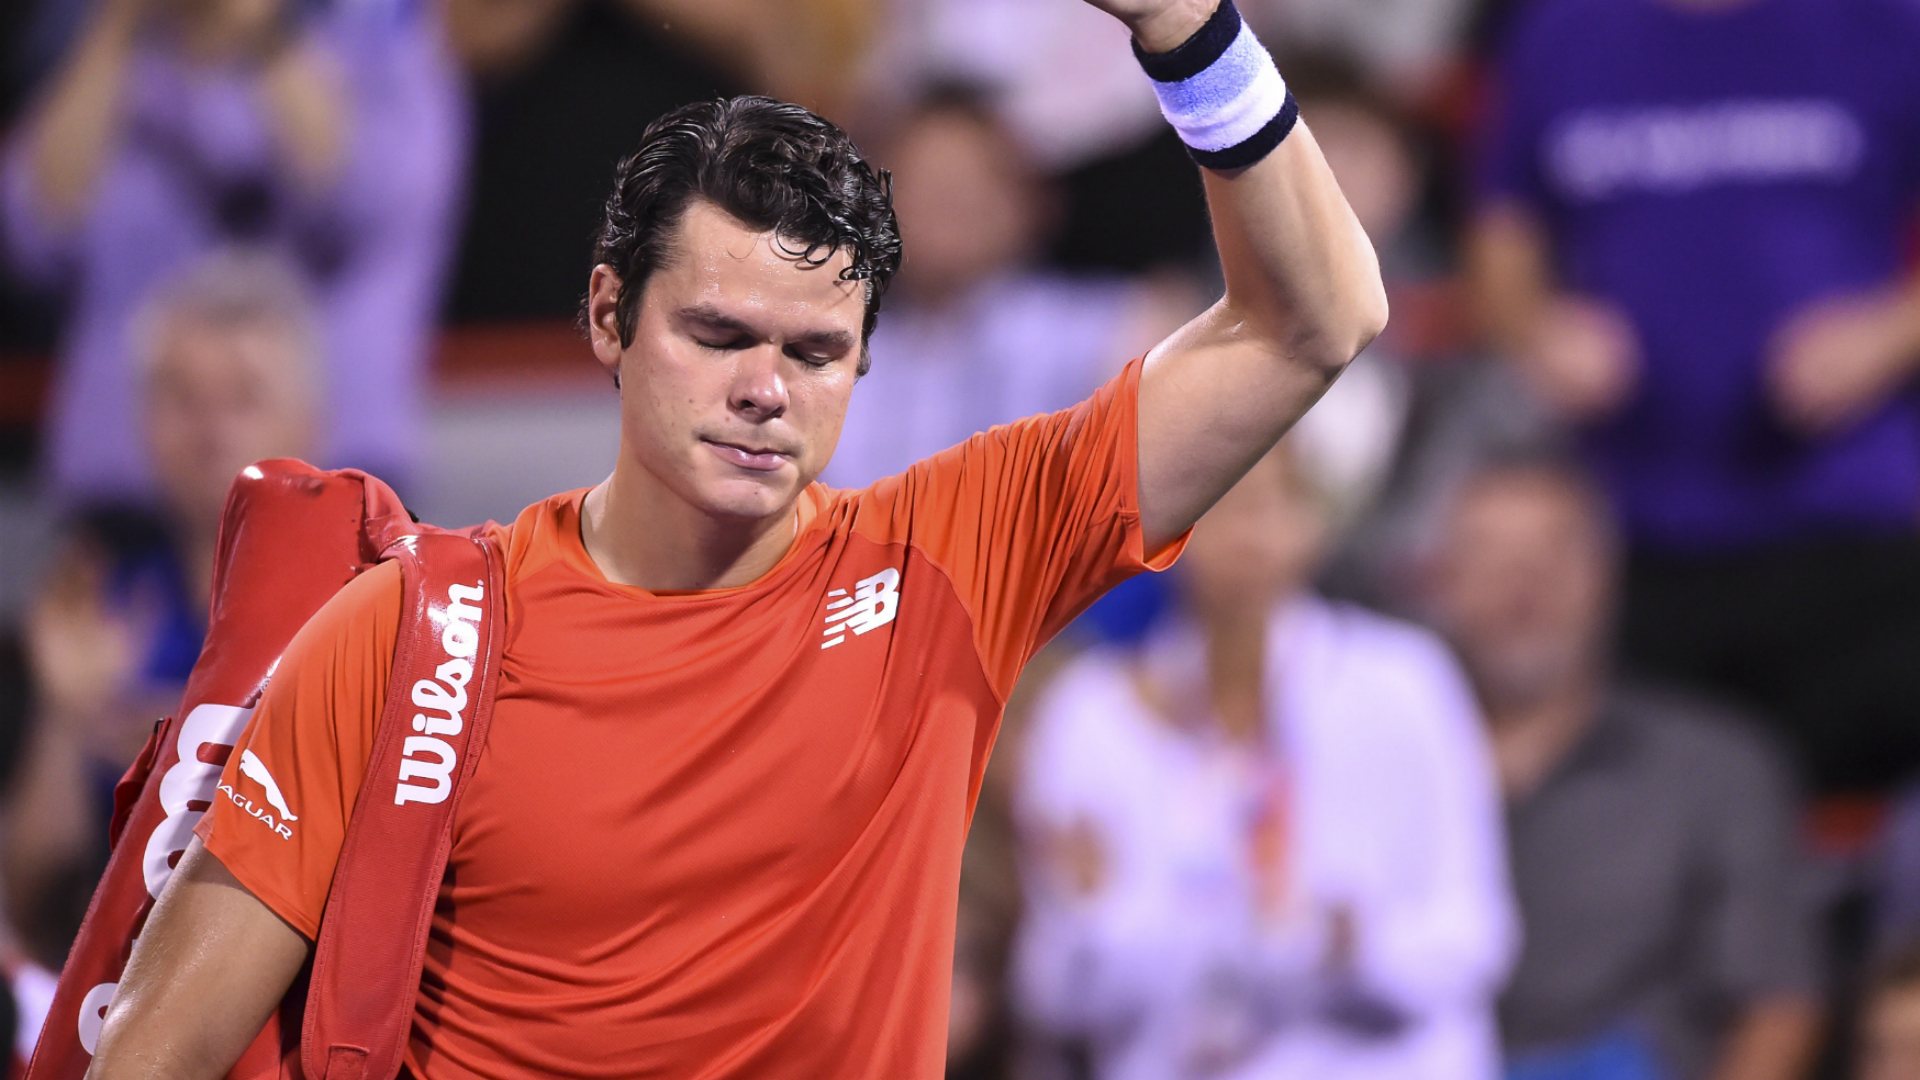 Rogers Cup 2019: Raonic forced to retire, Auger-Aliassime advances to Round of 16